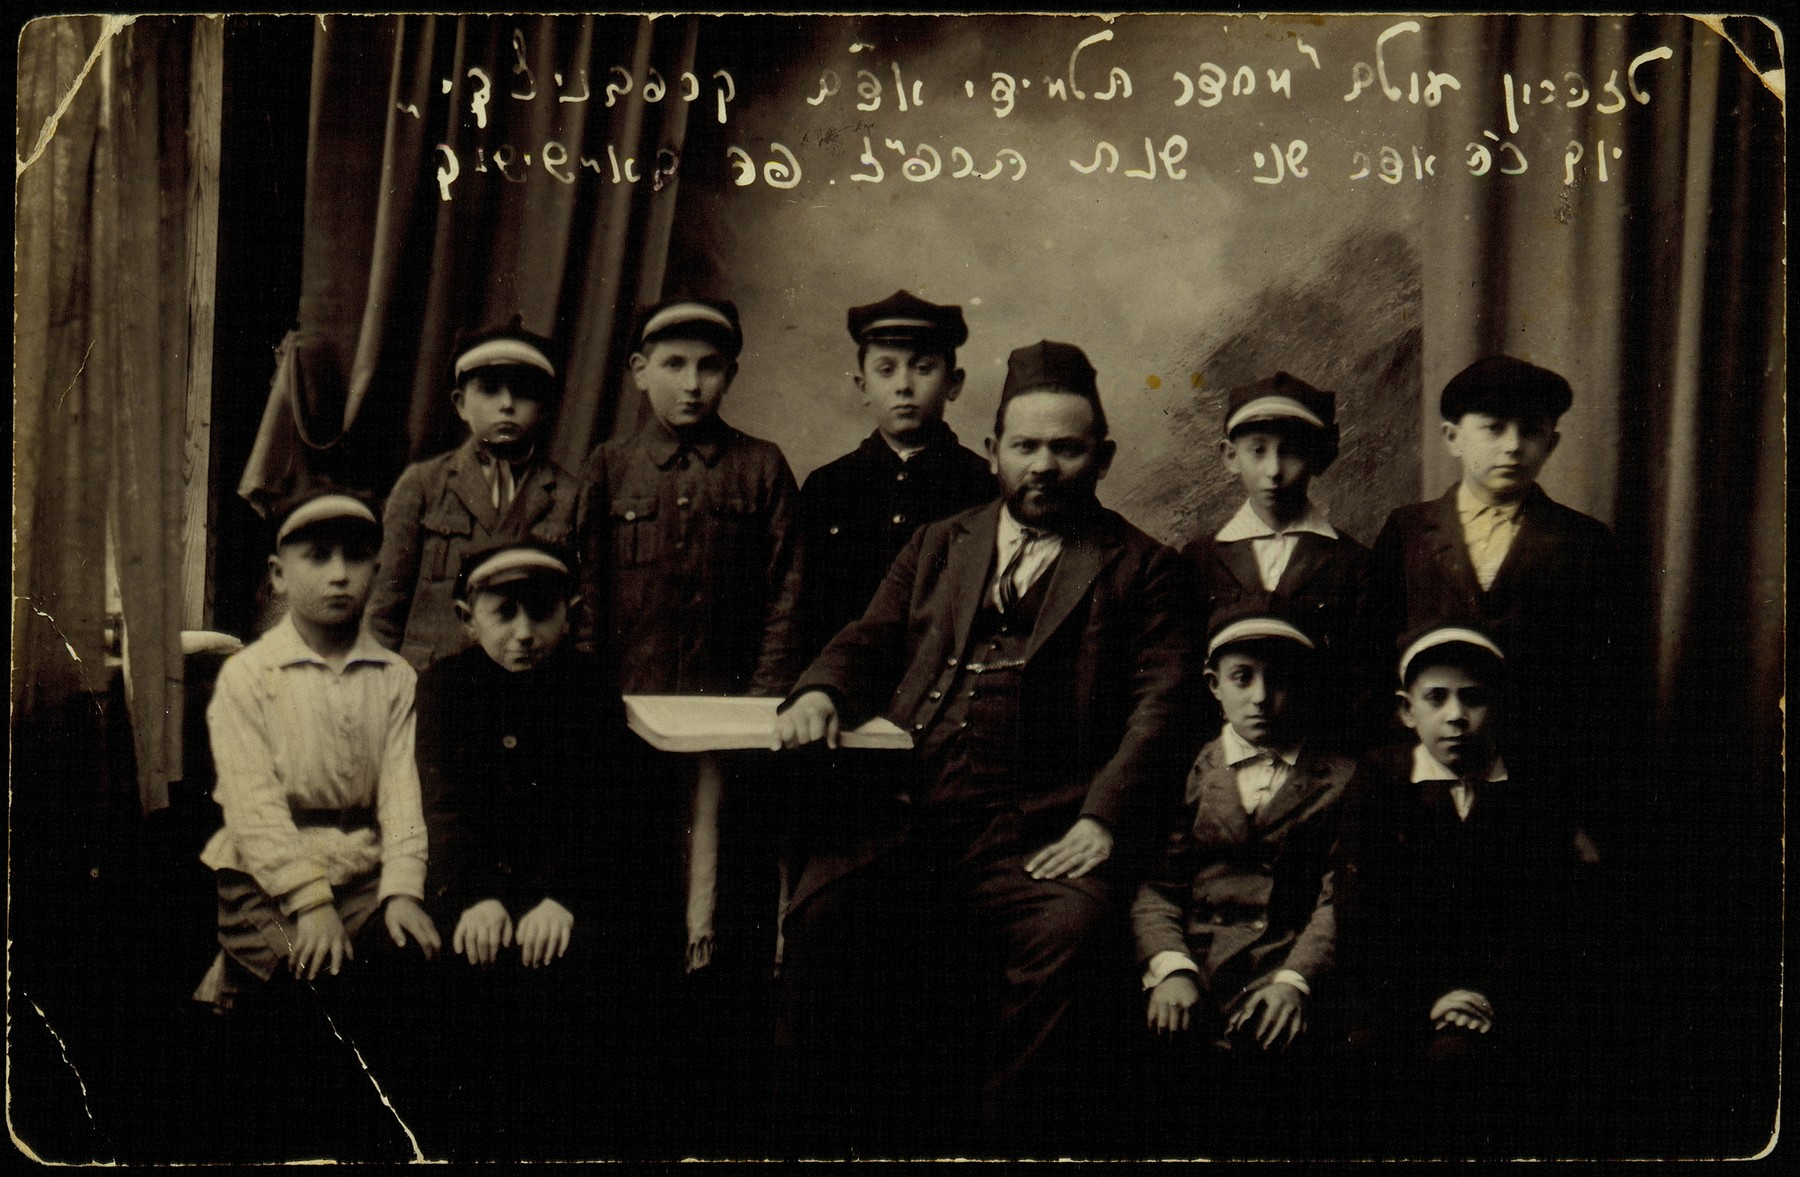 Religious school (cheder) students in Eisiskes.    Seated in the center is the teacher, Eliezer David Mordekhai Krapovnitski, who was known as Reb Adam.  The Heder boys are (standing, right to left)  Shlomo Pilushki, Moshe Dovid Katz, Shmuel Shlanski, Avraham Kabacznik, and Shlomo Dugaczanski; (seated) Sander Nochomowicz, Alexander Zisl Hinski, Yehiel Blacharowicz, and a boy known as Hishveh  from the village of Golmecziszki.   Shmuel and Hishveh immigrated to America, Sander to Argentina, Zisl to Palestine.  Of the others, Avraham died a natural death; the rest were murdered by the Germans during the September 1941 killing action in Eisiskes.